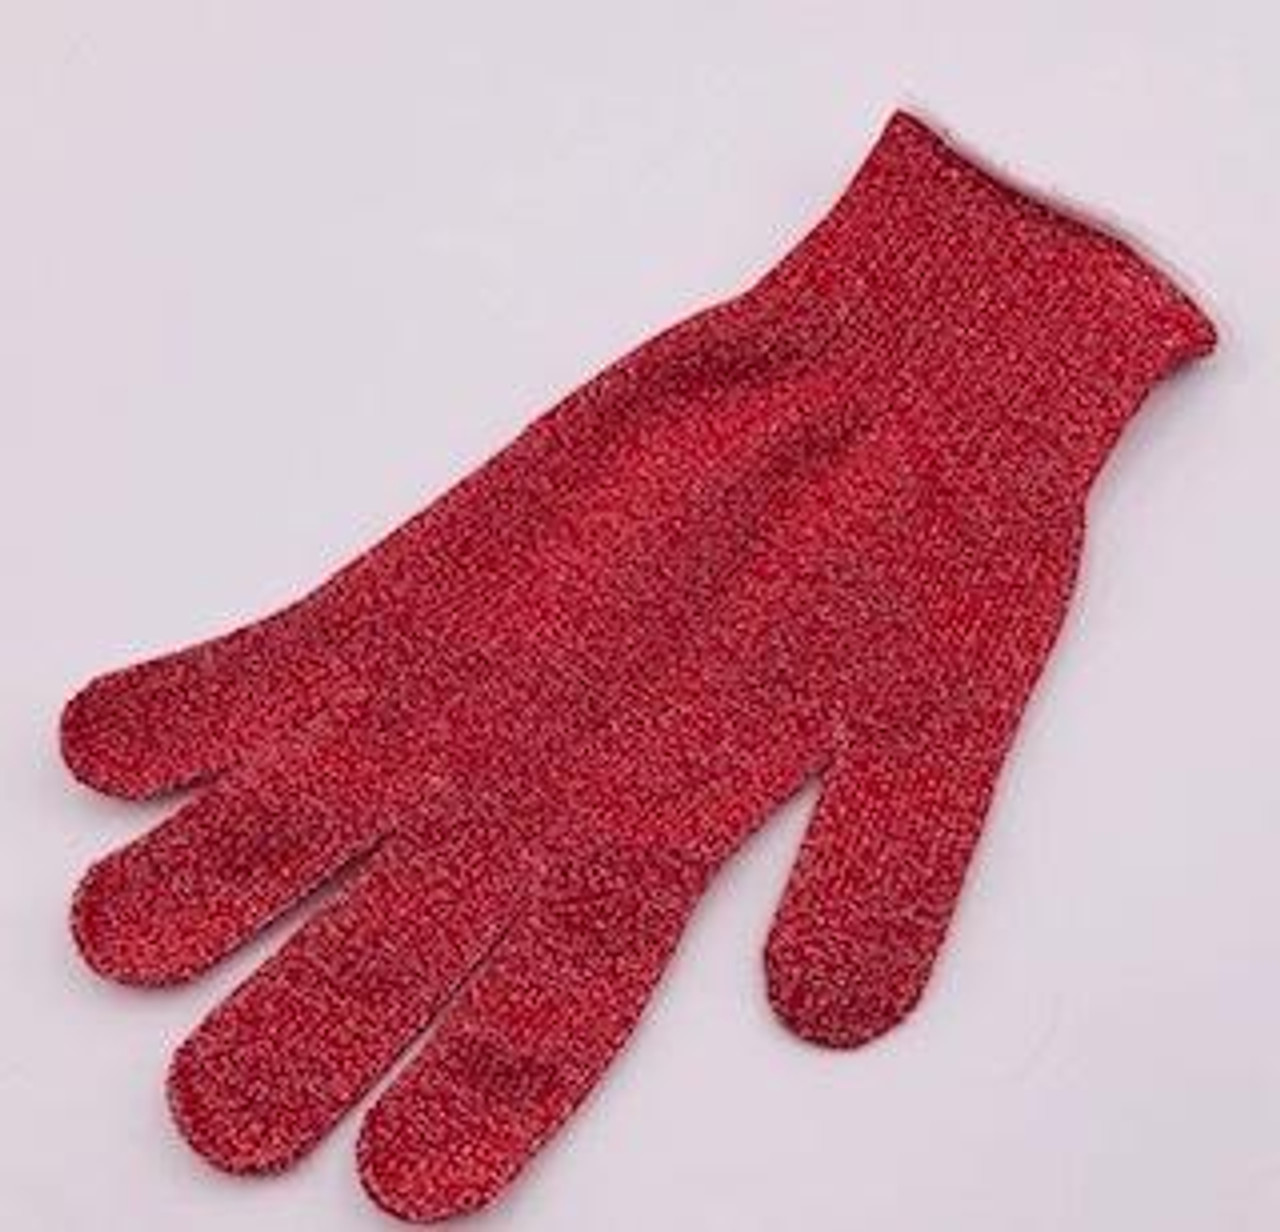 Big Red Cut-Resistant Carving Glove